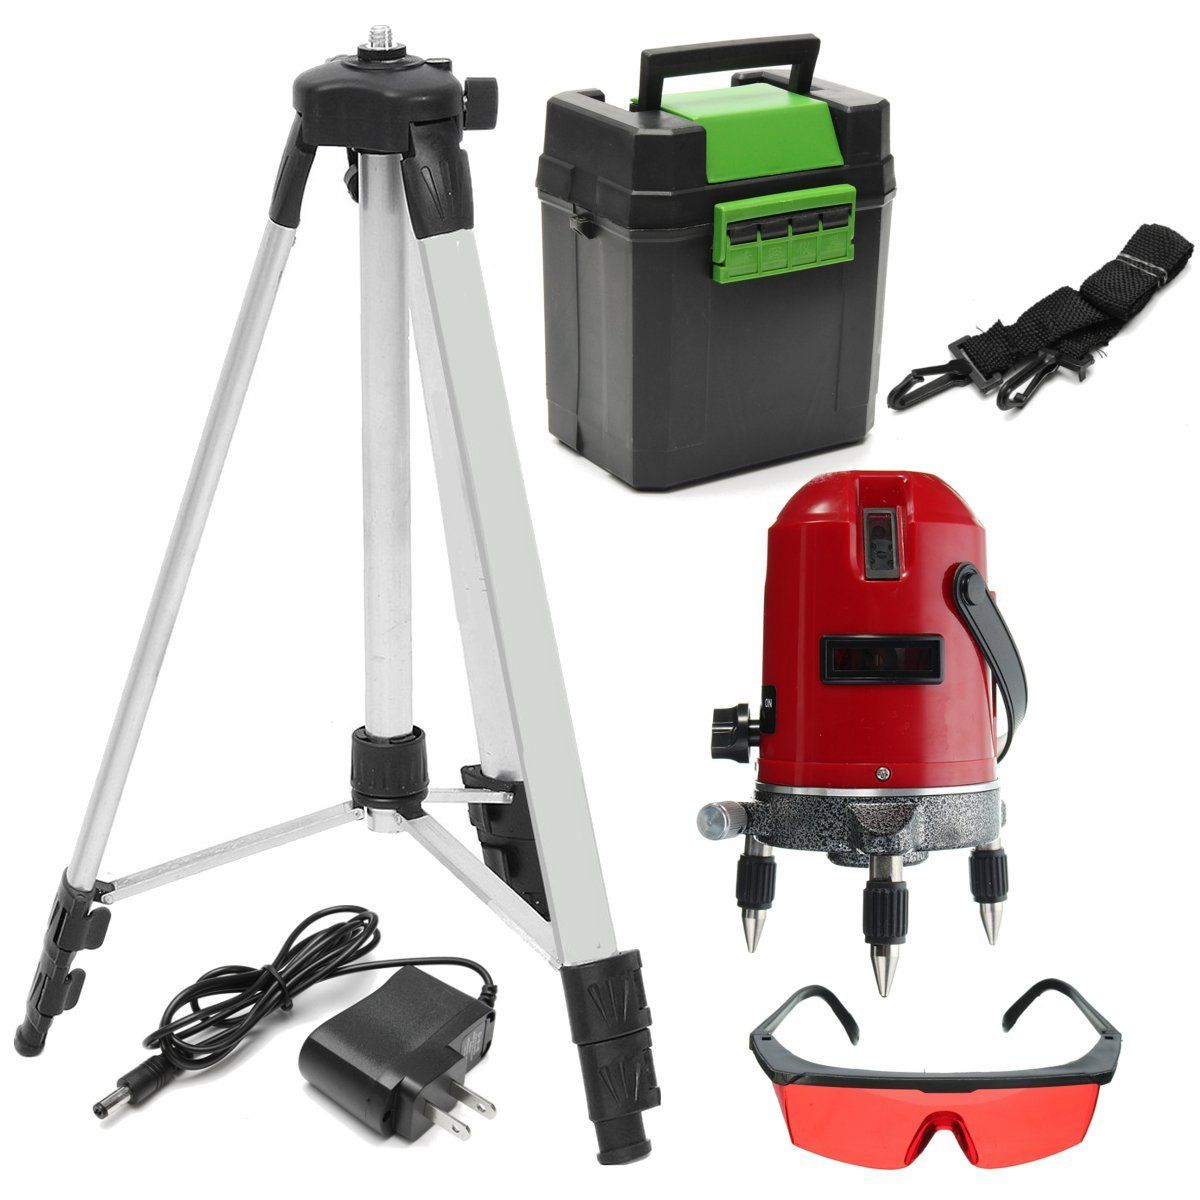 Red 5 Line 6 Point Laser Level 360 Rotary Self Leveling Laser Level With Tripod Tripod Rotary Aluminium Alloy